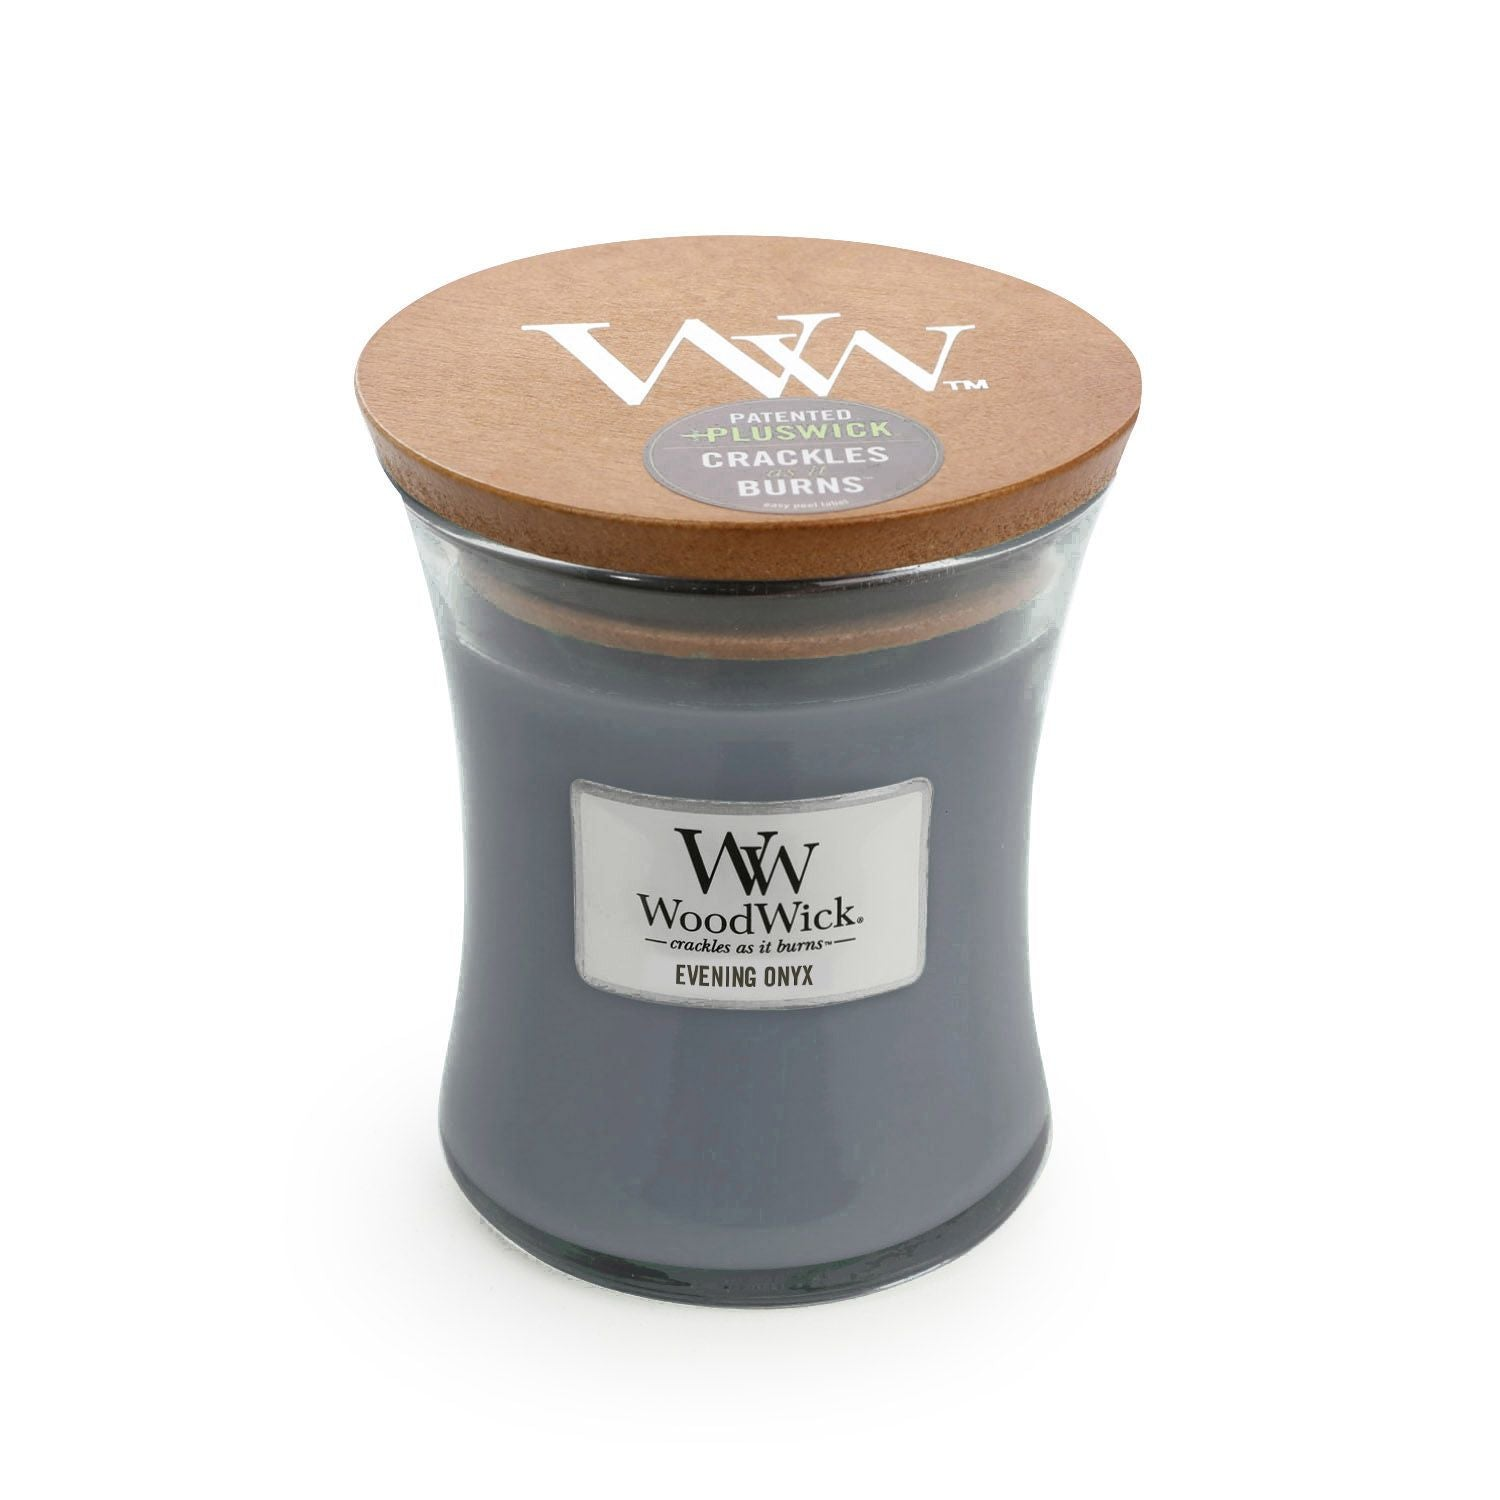 Medium Evening Onyx Scented WoodWick Soy Candle